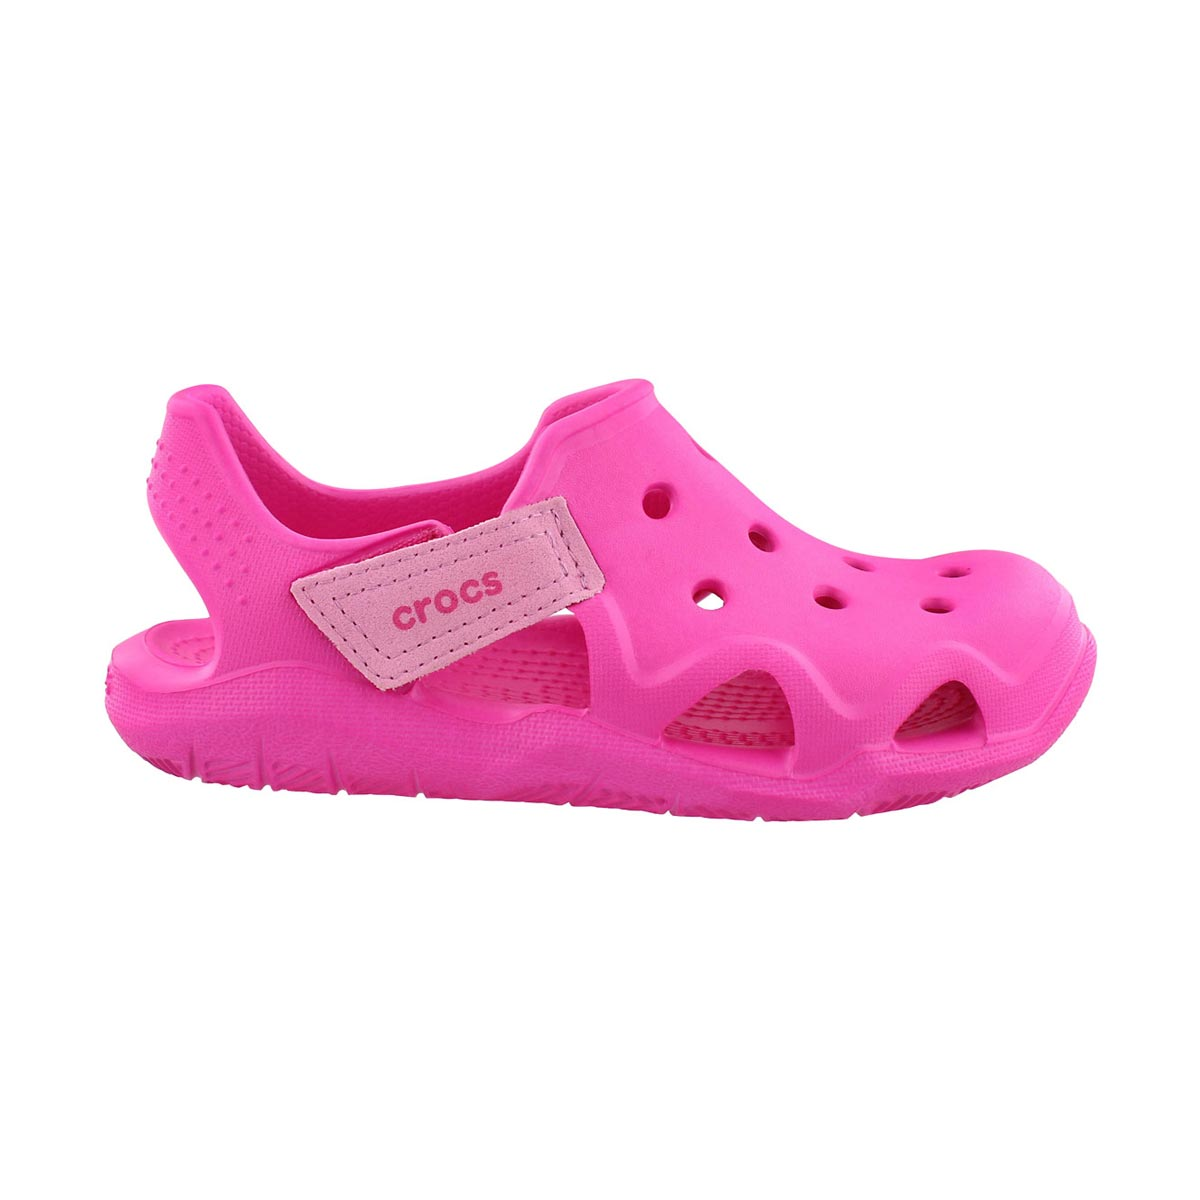 Grls Swiftwater Wave pink casual sandal